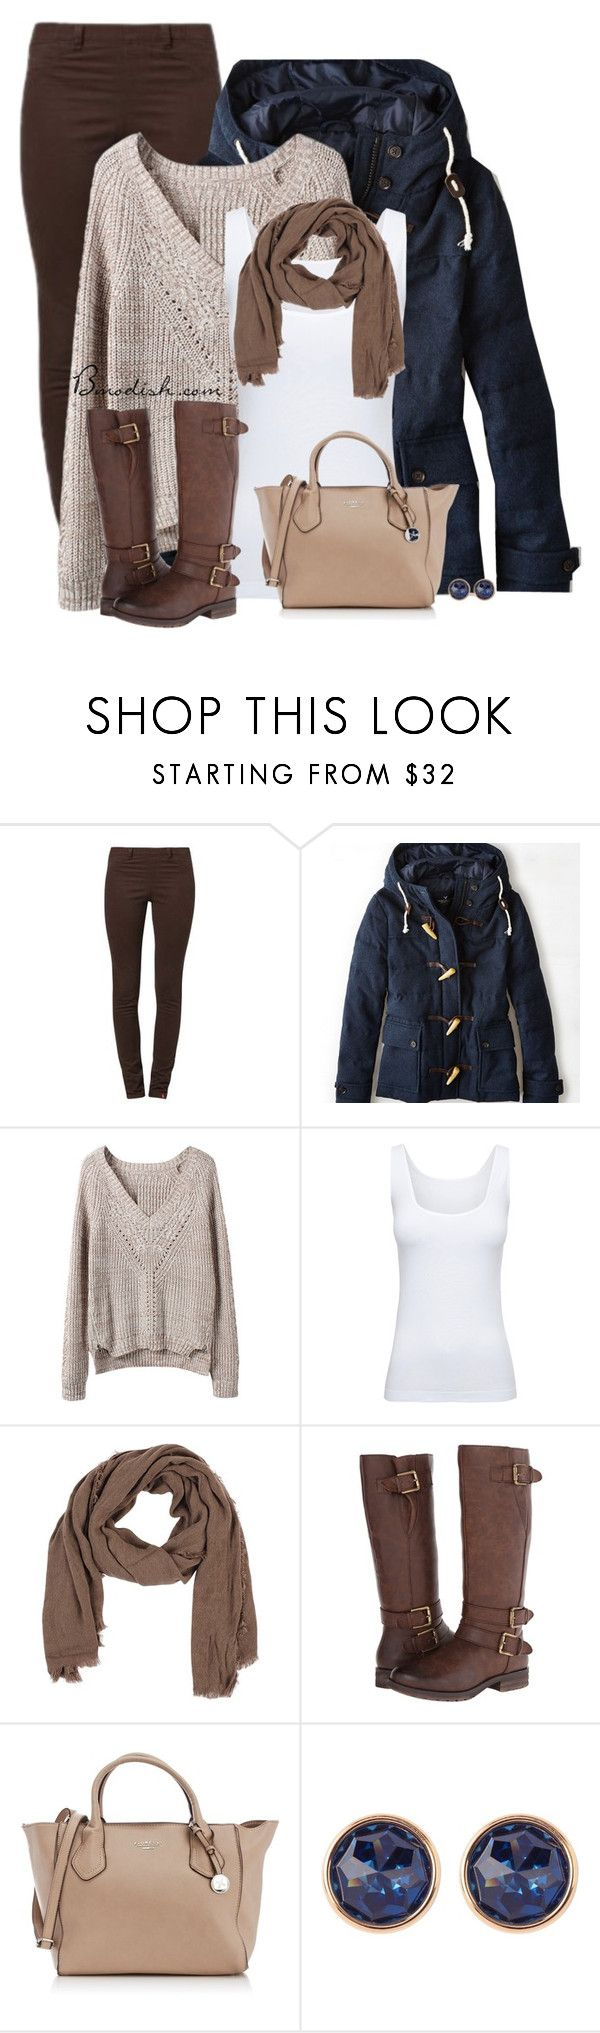 """""""Unbenannt #513"""" by wulanizer ❤ liked on Polyvore featuring Edc By Esprit, American Eagle Outfitters, Boody, Metropark, Naturalizer, Fiorelli and Susan Caplan Vintage"""